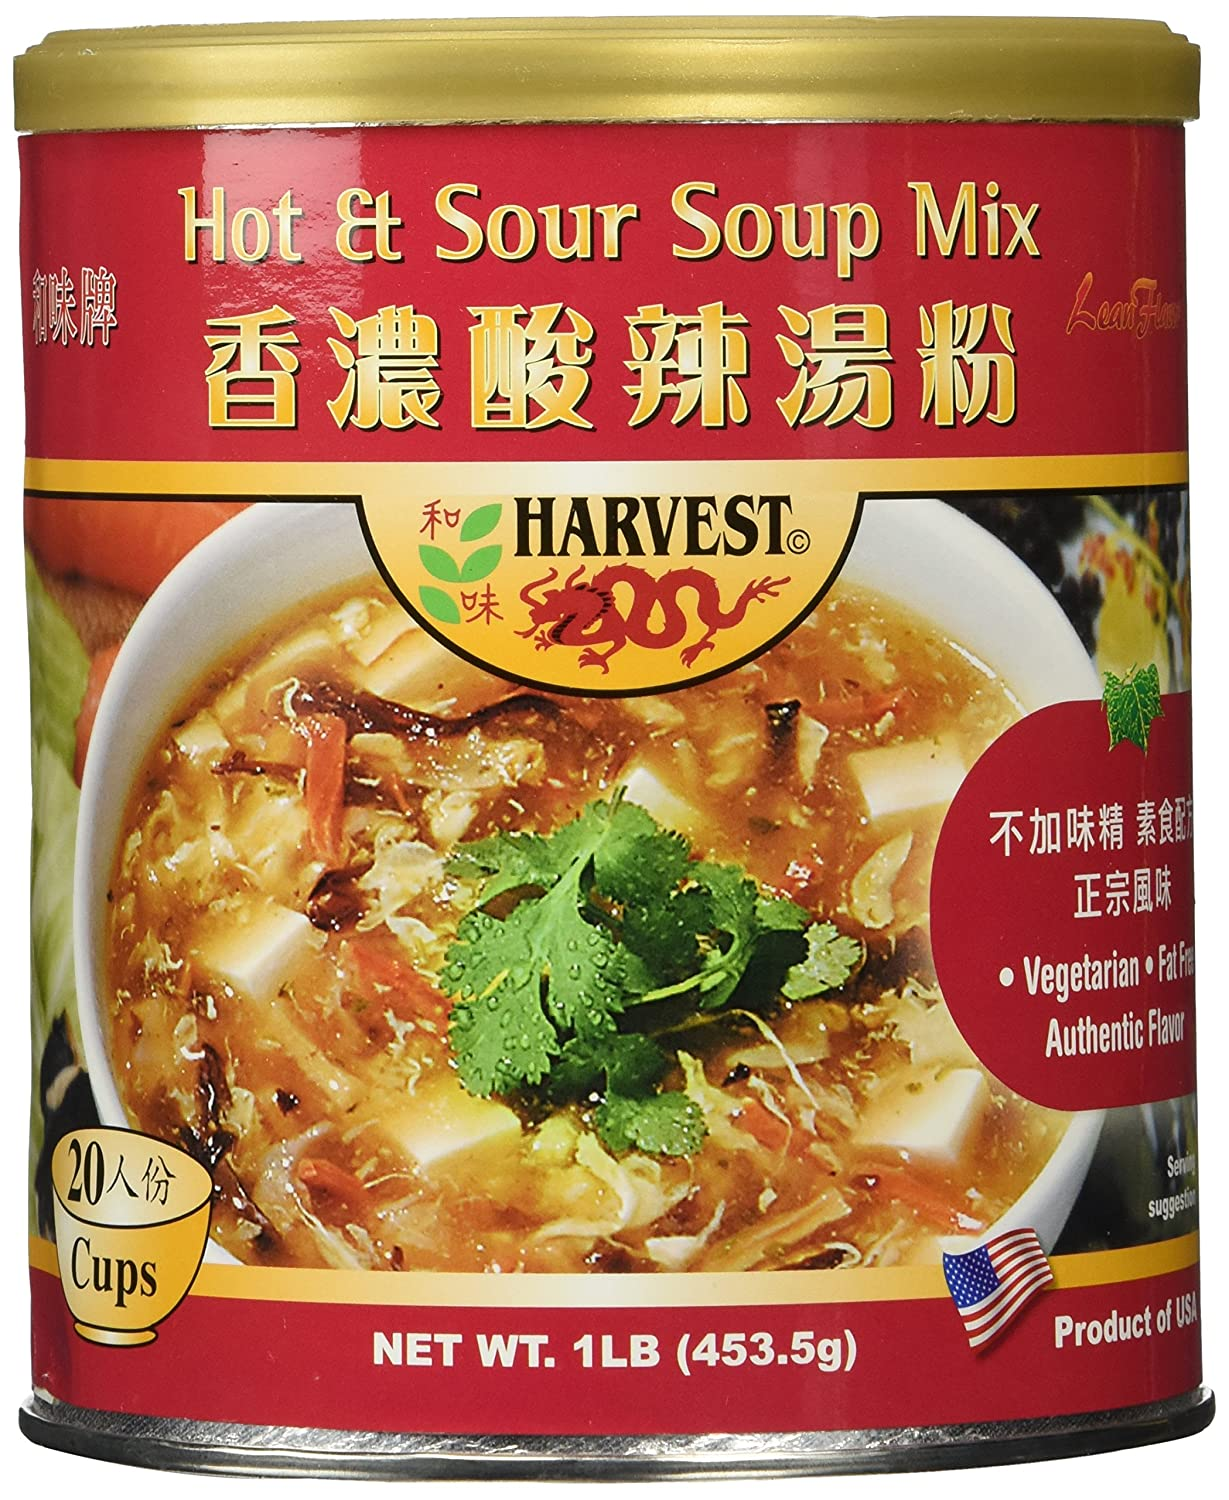 Amazon.com : Hot and Sour Soup : Vegetable Soups : Grocery & Gourmet Food